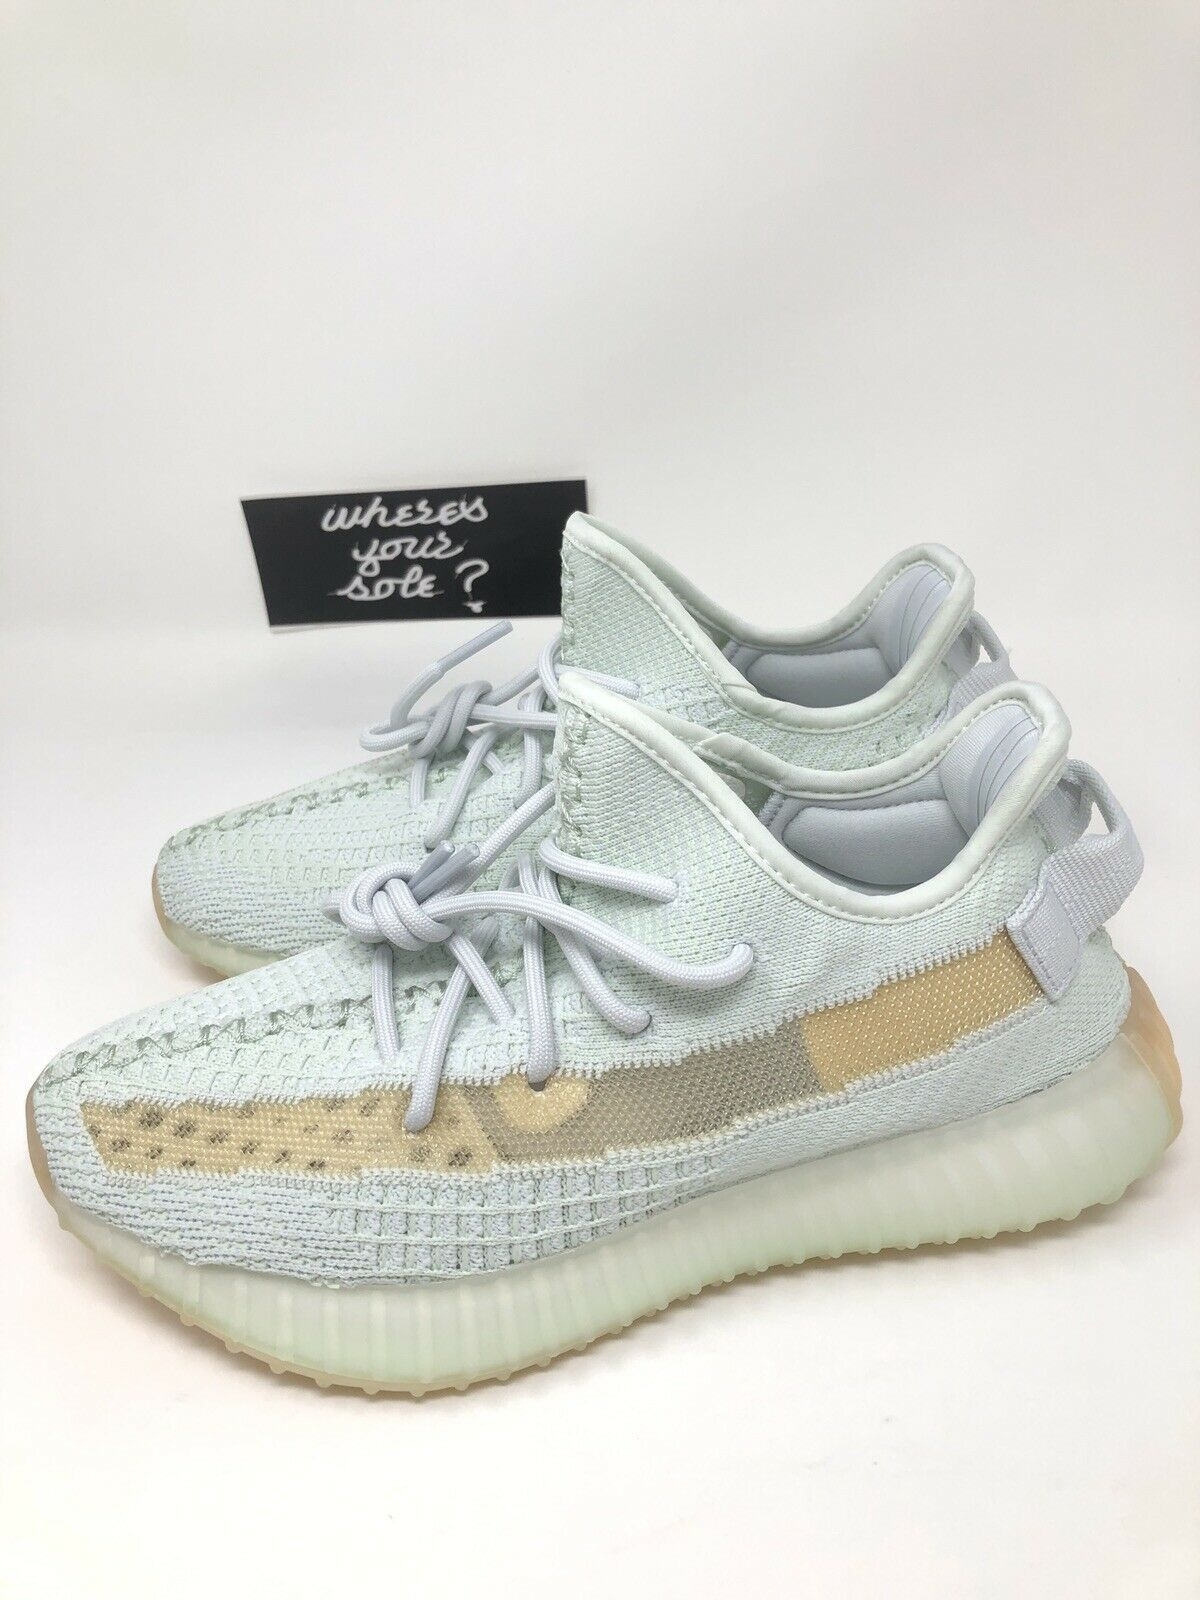 Adidas Yeezy 350 Boost V2 Hyperspace men size 6.5 womens 8 EG7491 DS NEW